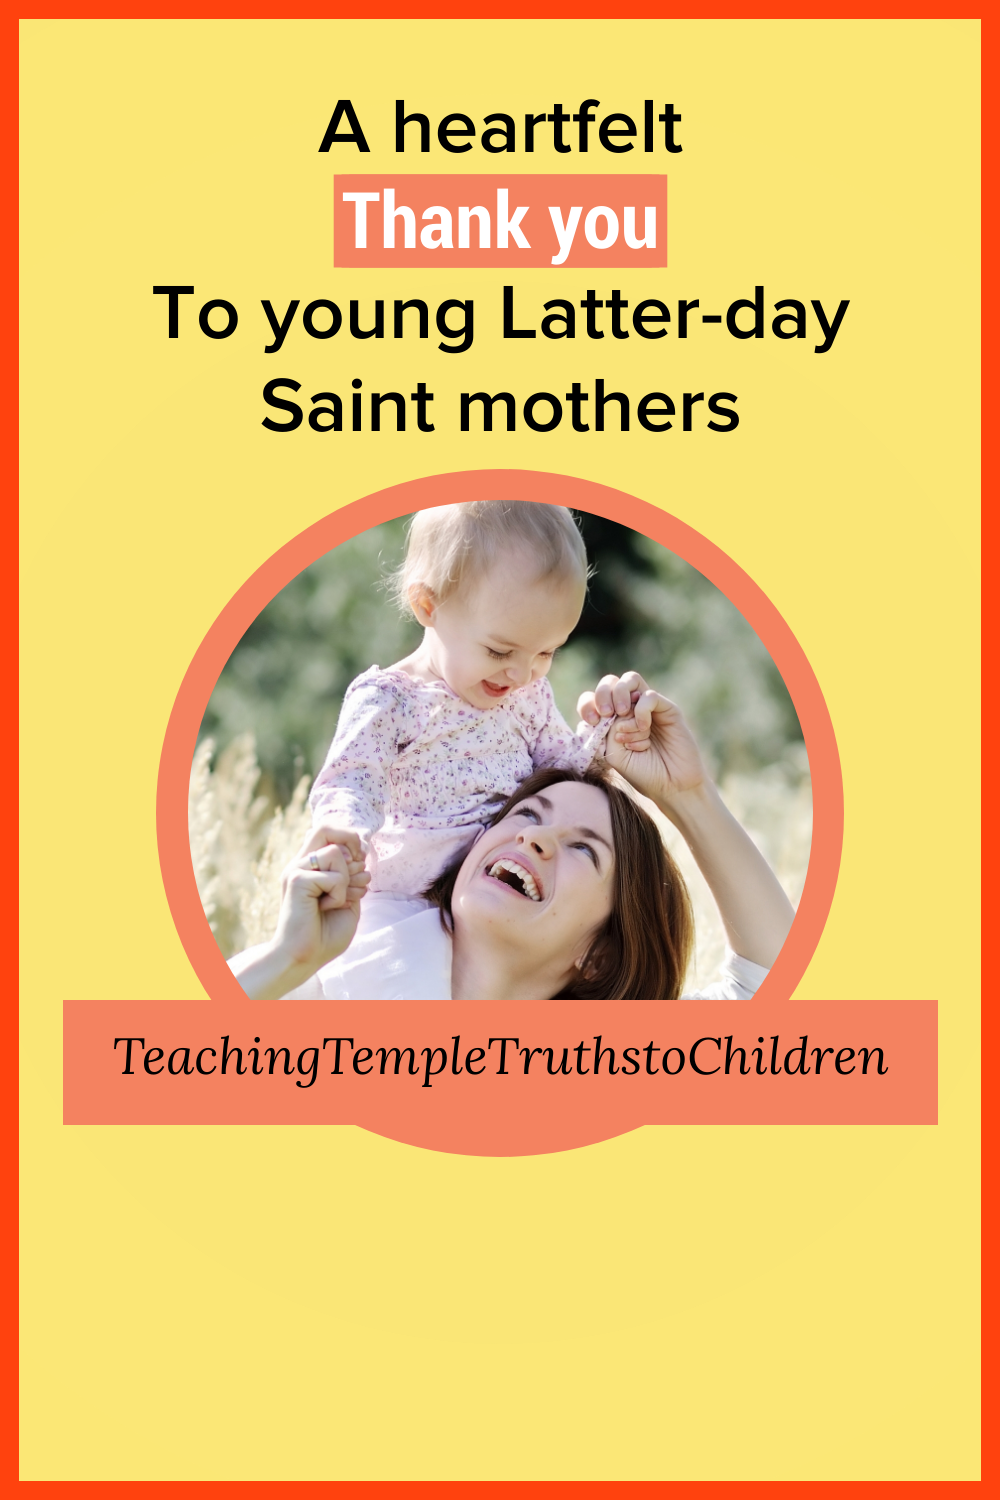 A heartfelt thank you note to young Latter-day Saint mothers